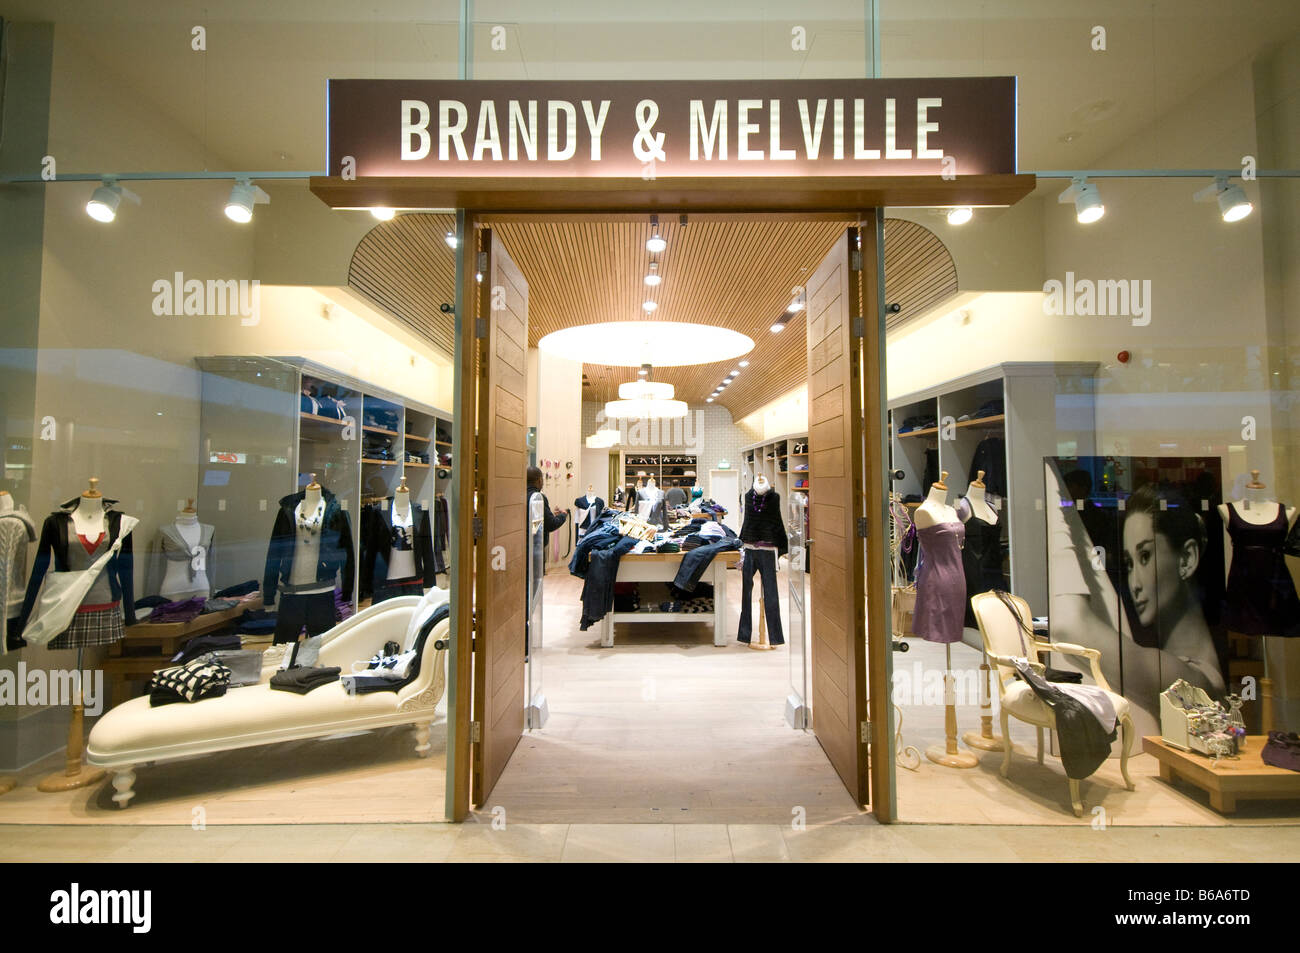 Brandy and Melville Stock Photo